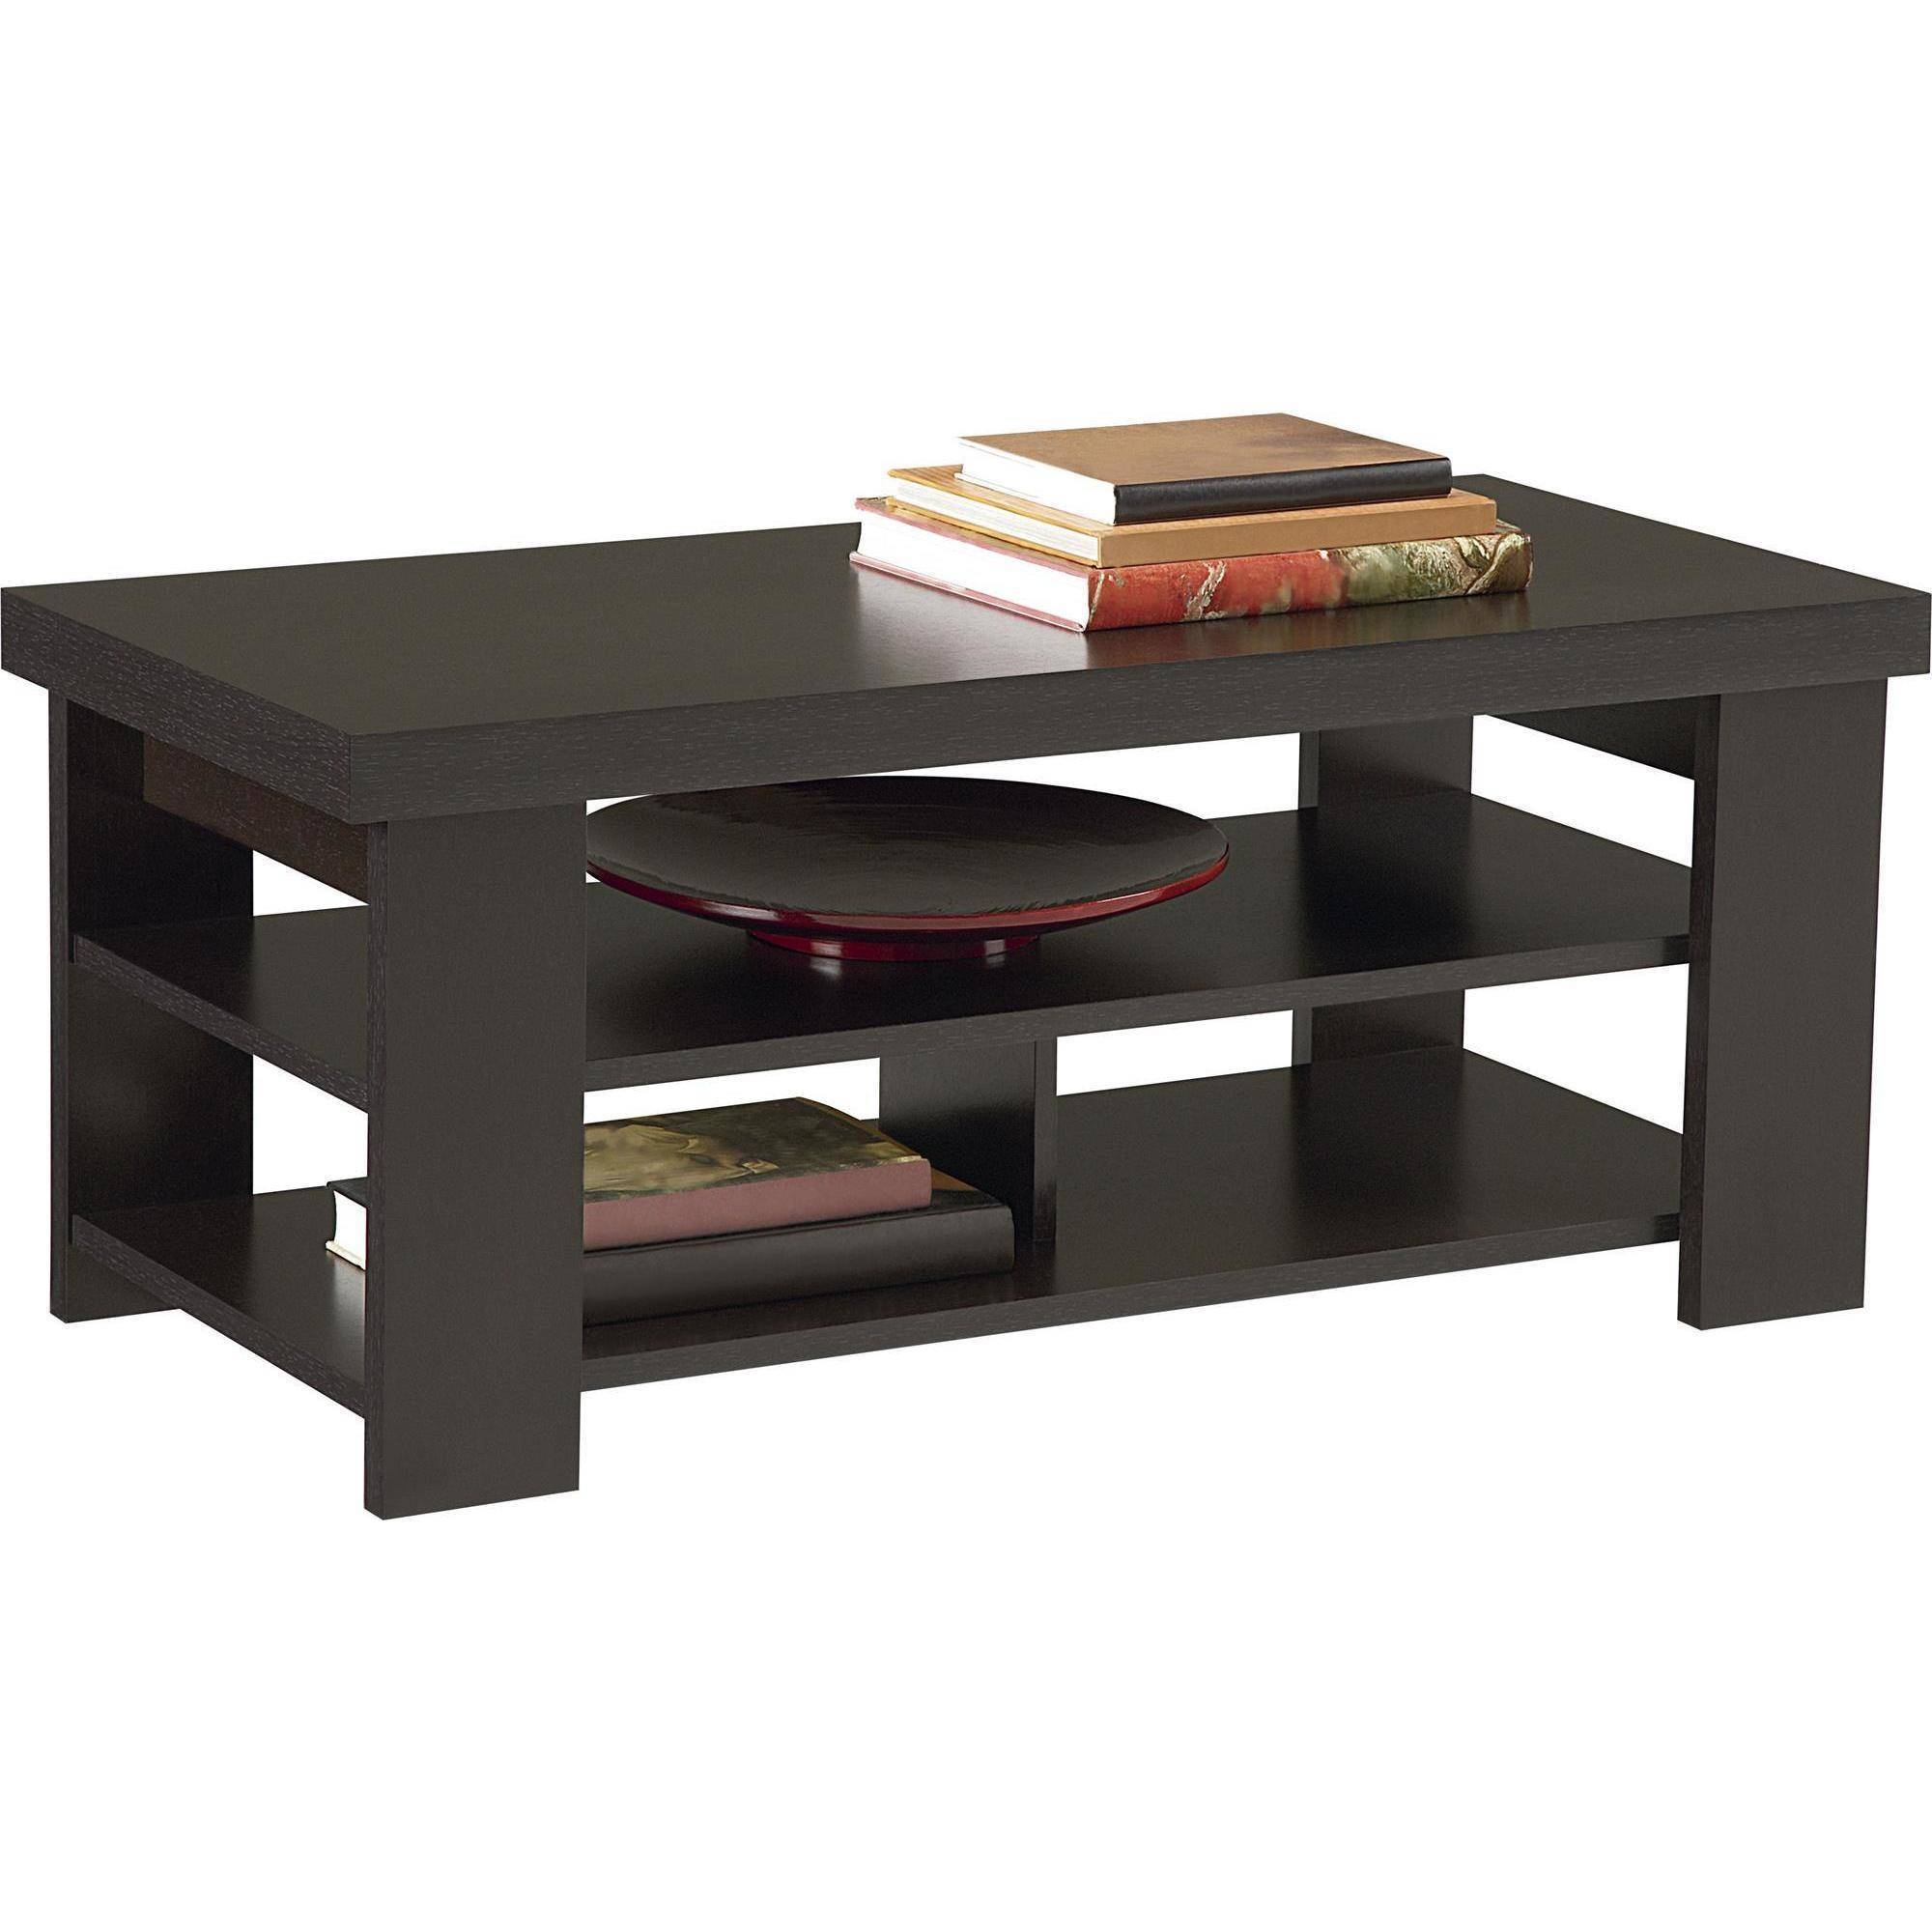 Ameriwood Home Jensen Coffee Table, Espresso – Walmart Pertaining To Small Coffee Tables With Shelf (View 1 of 30)